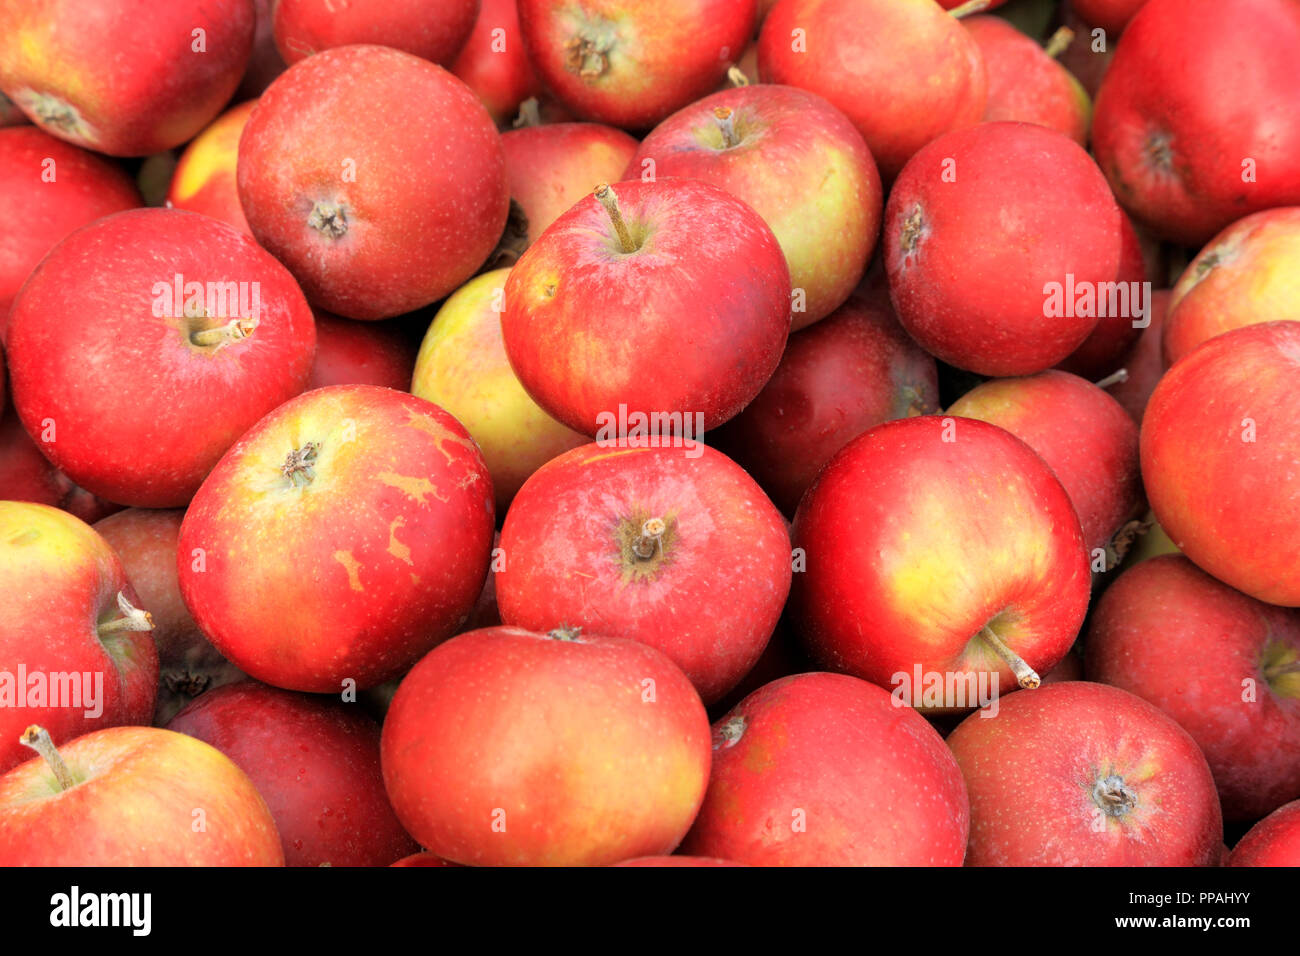 Apple, apples, Ingall's Red,  farm shop, display, malus domestica, edible, fruit - Stock Image